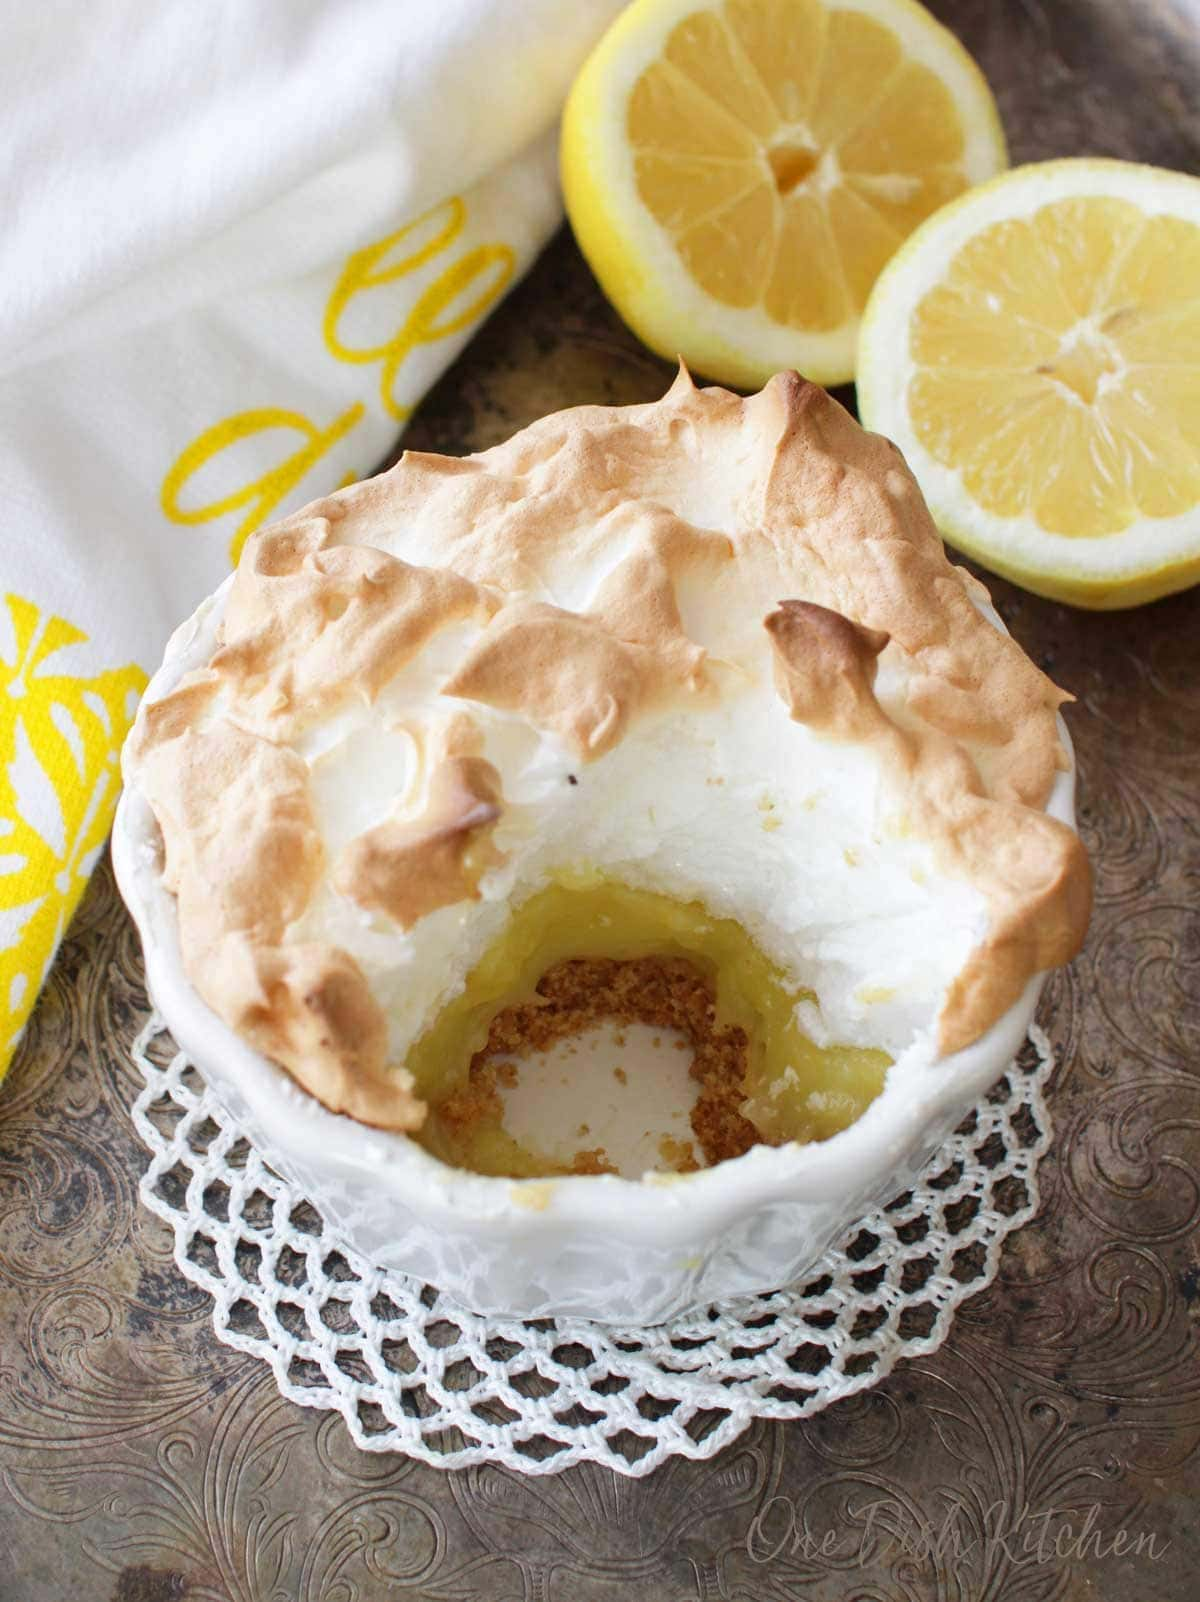 A small round lemon meringue pie with a round section removed next to sliced lemons on a silver tray.